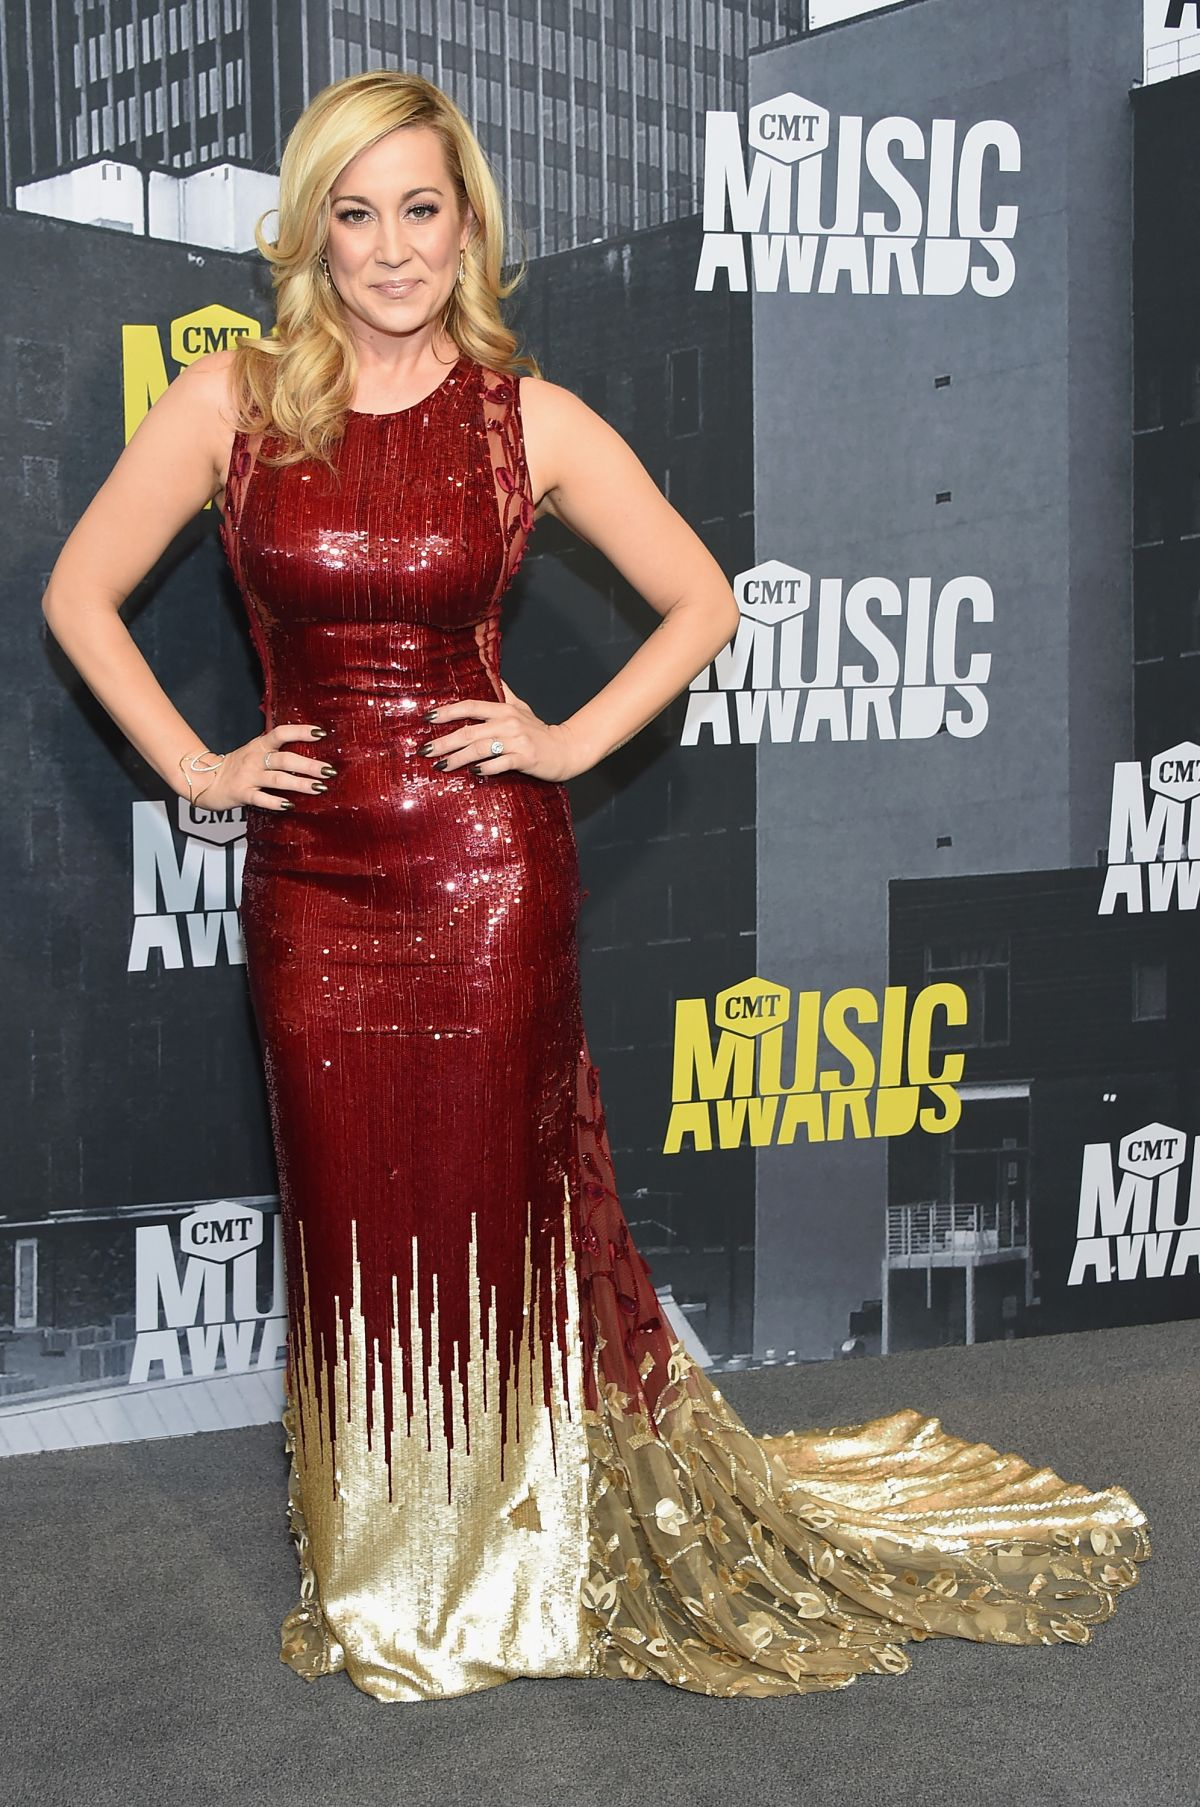 KELLIE PICKLER at 2017 CMT Music Awards in Nashville 06/07/2017